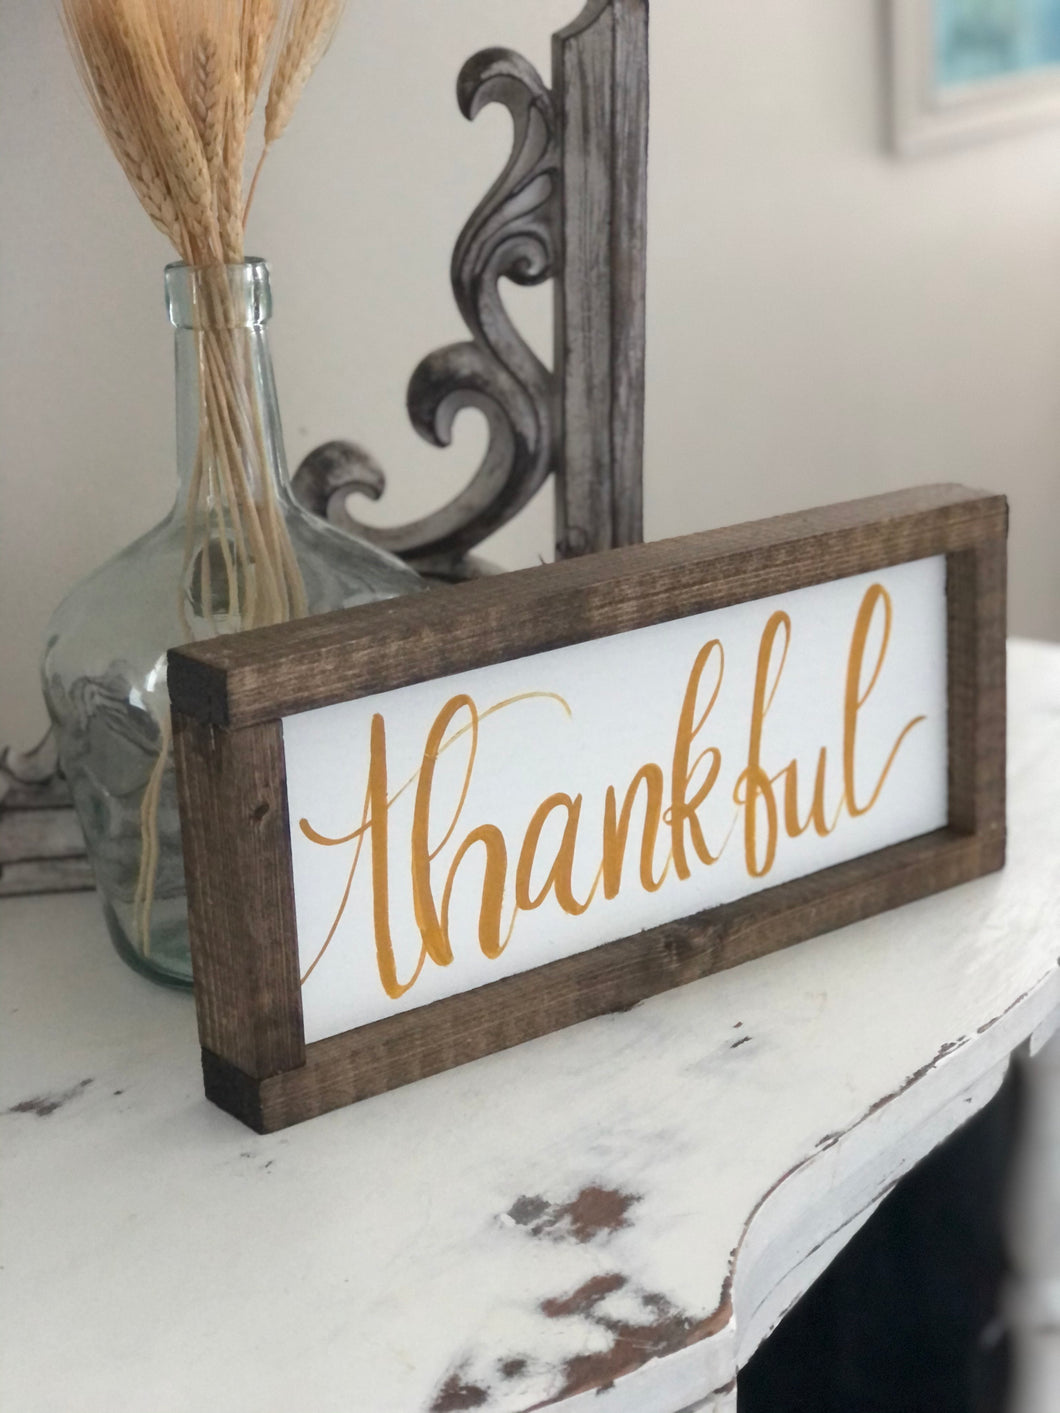 Thankful shelf sign